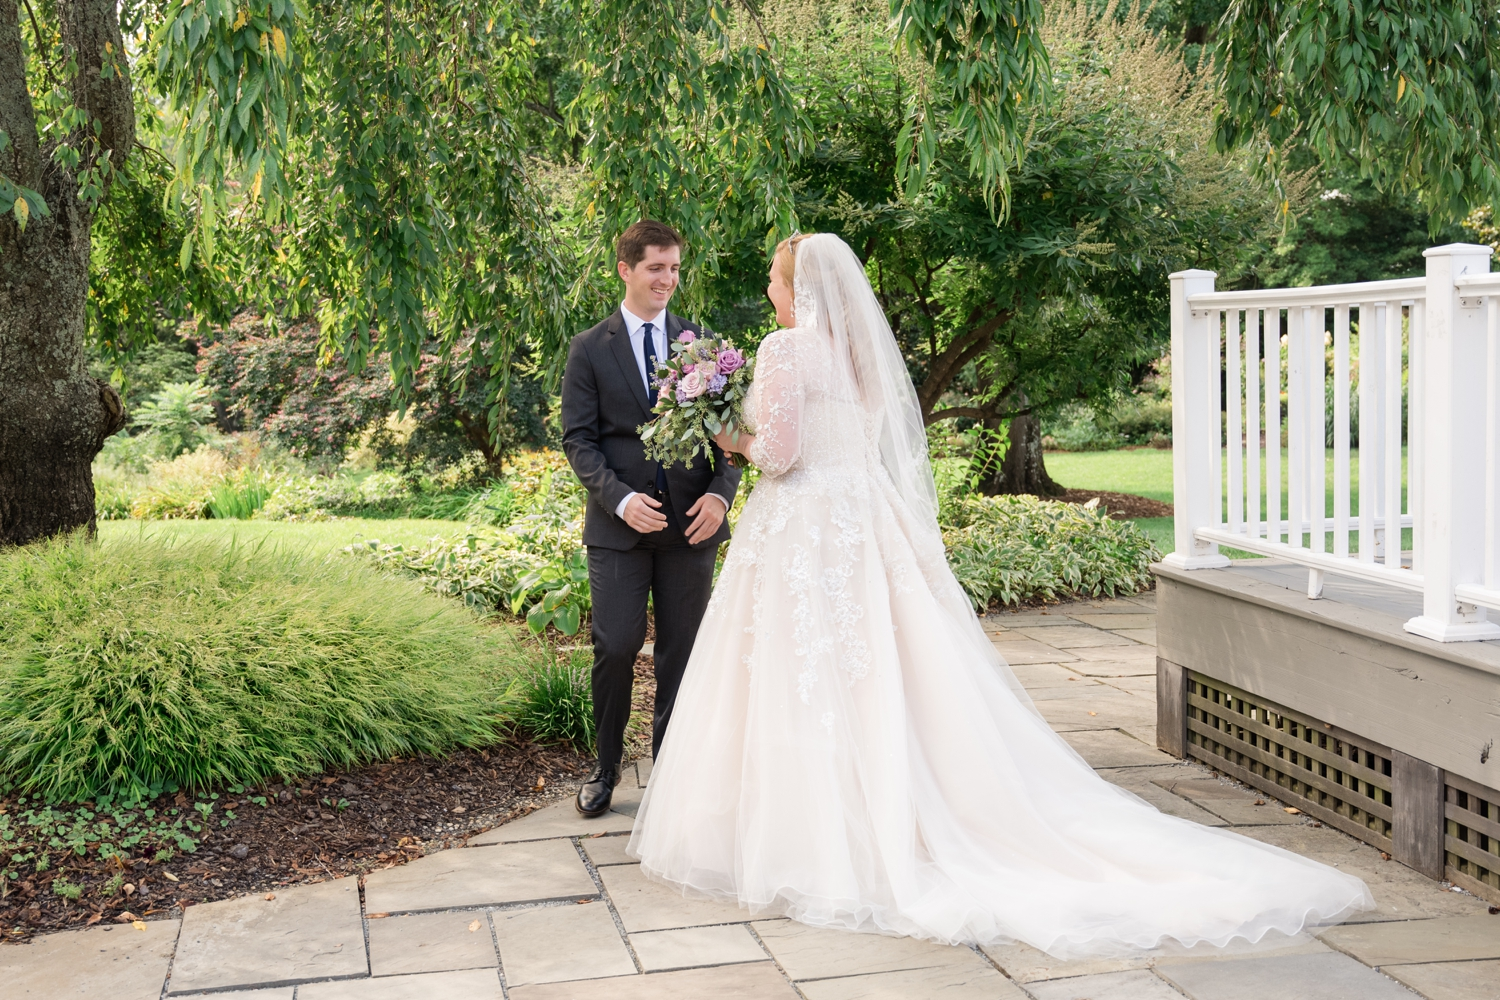 Micro wedding at London Town Gardens